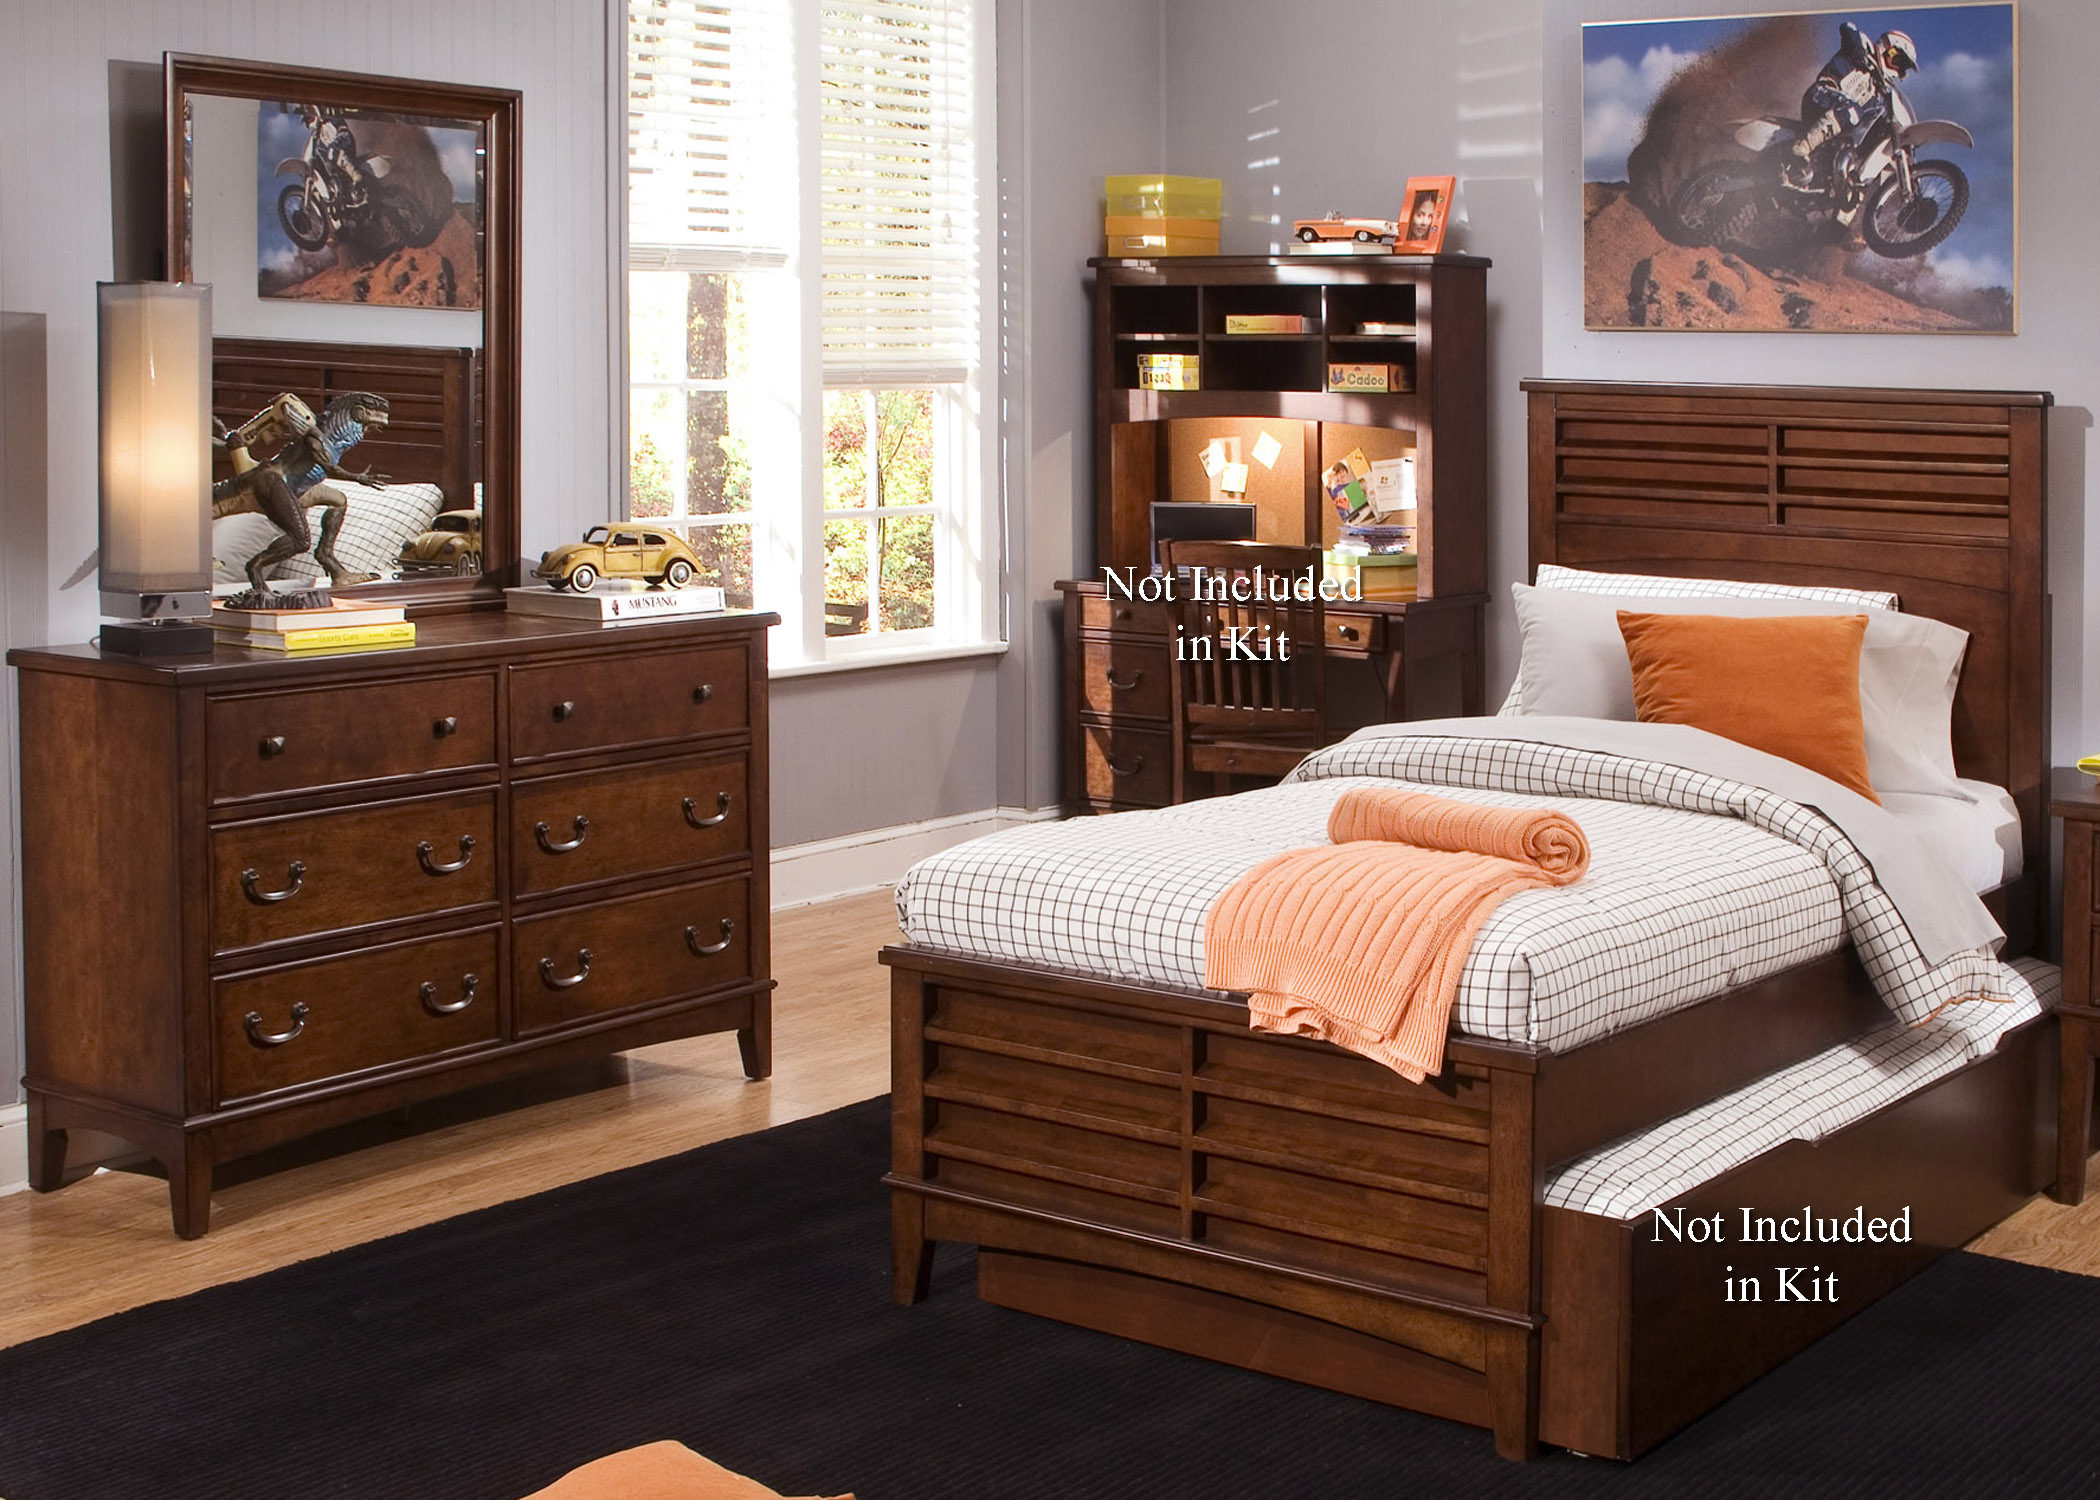 Liberty Furniture Chelsea Square Youth Bedroom Group - Item Number: 628-YBR-TPBDM